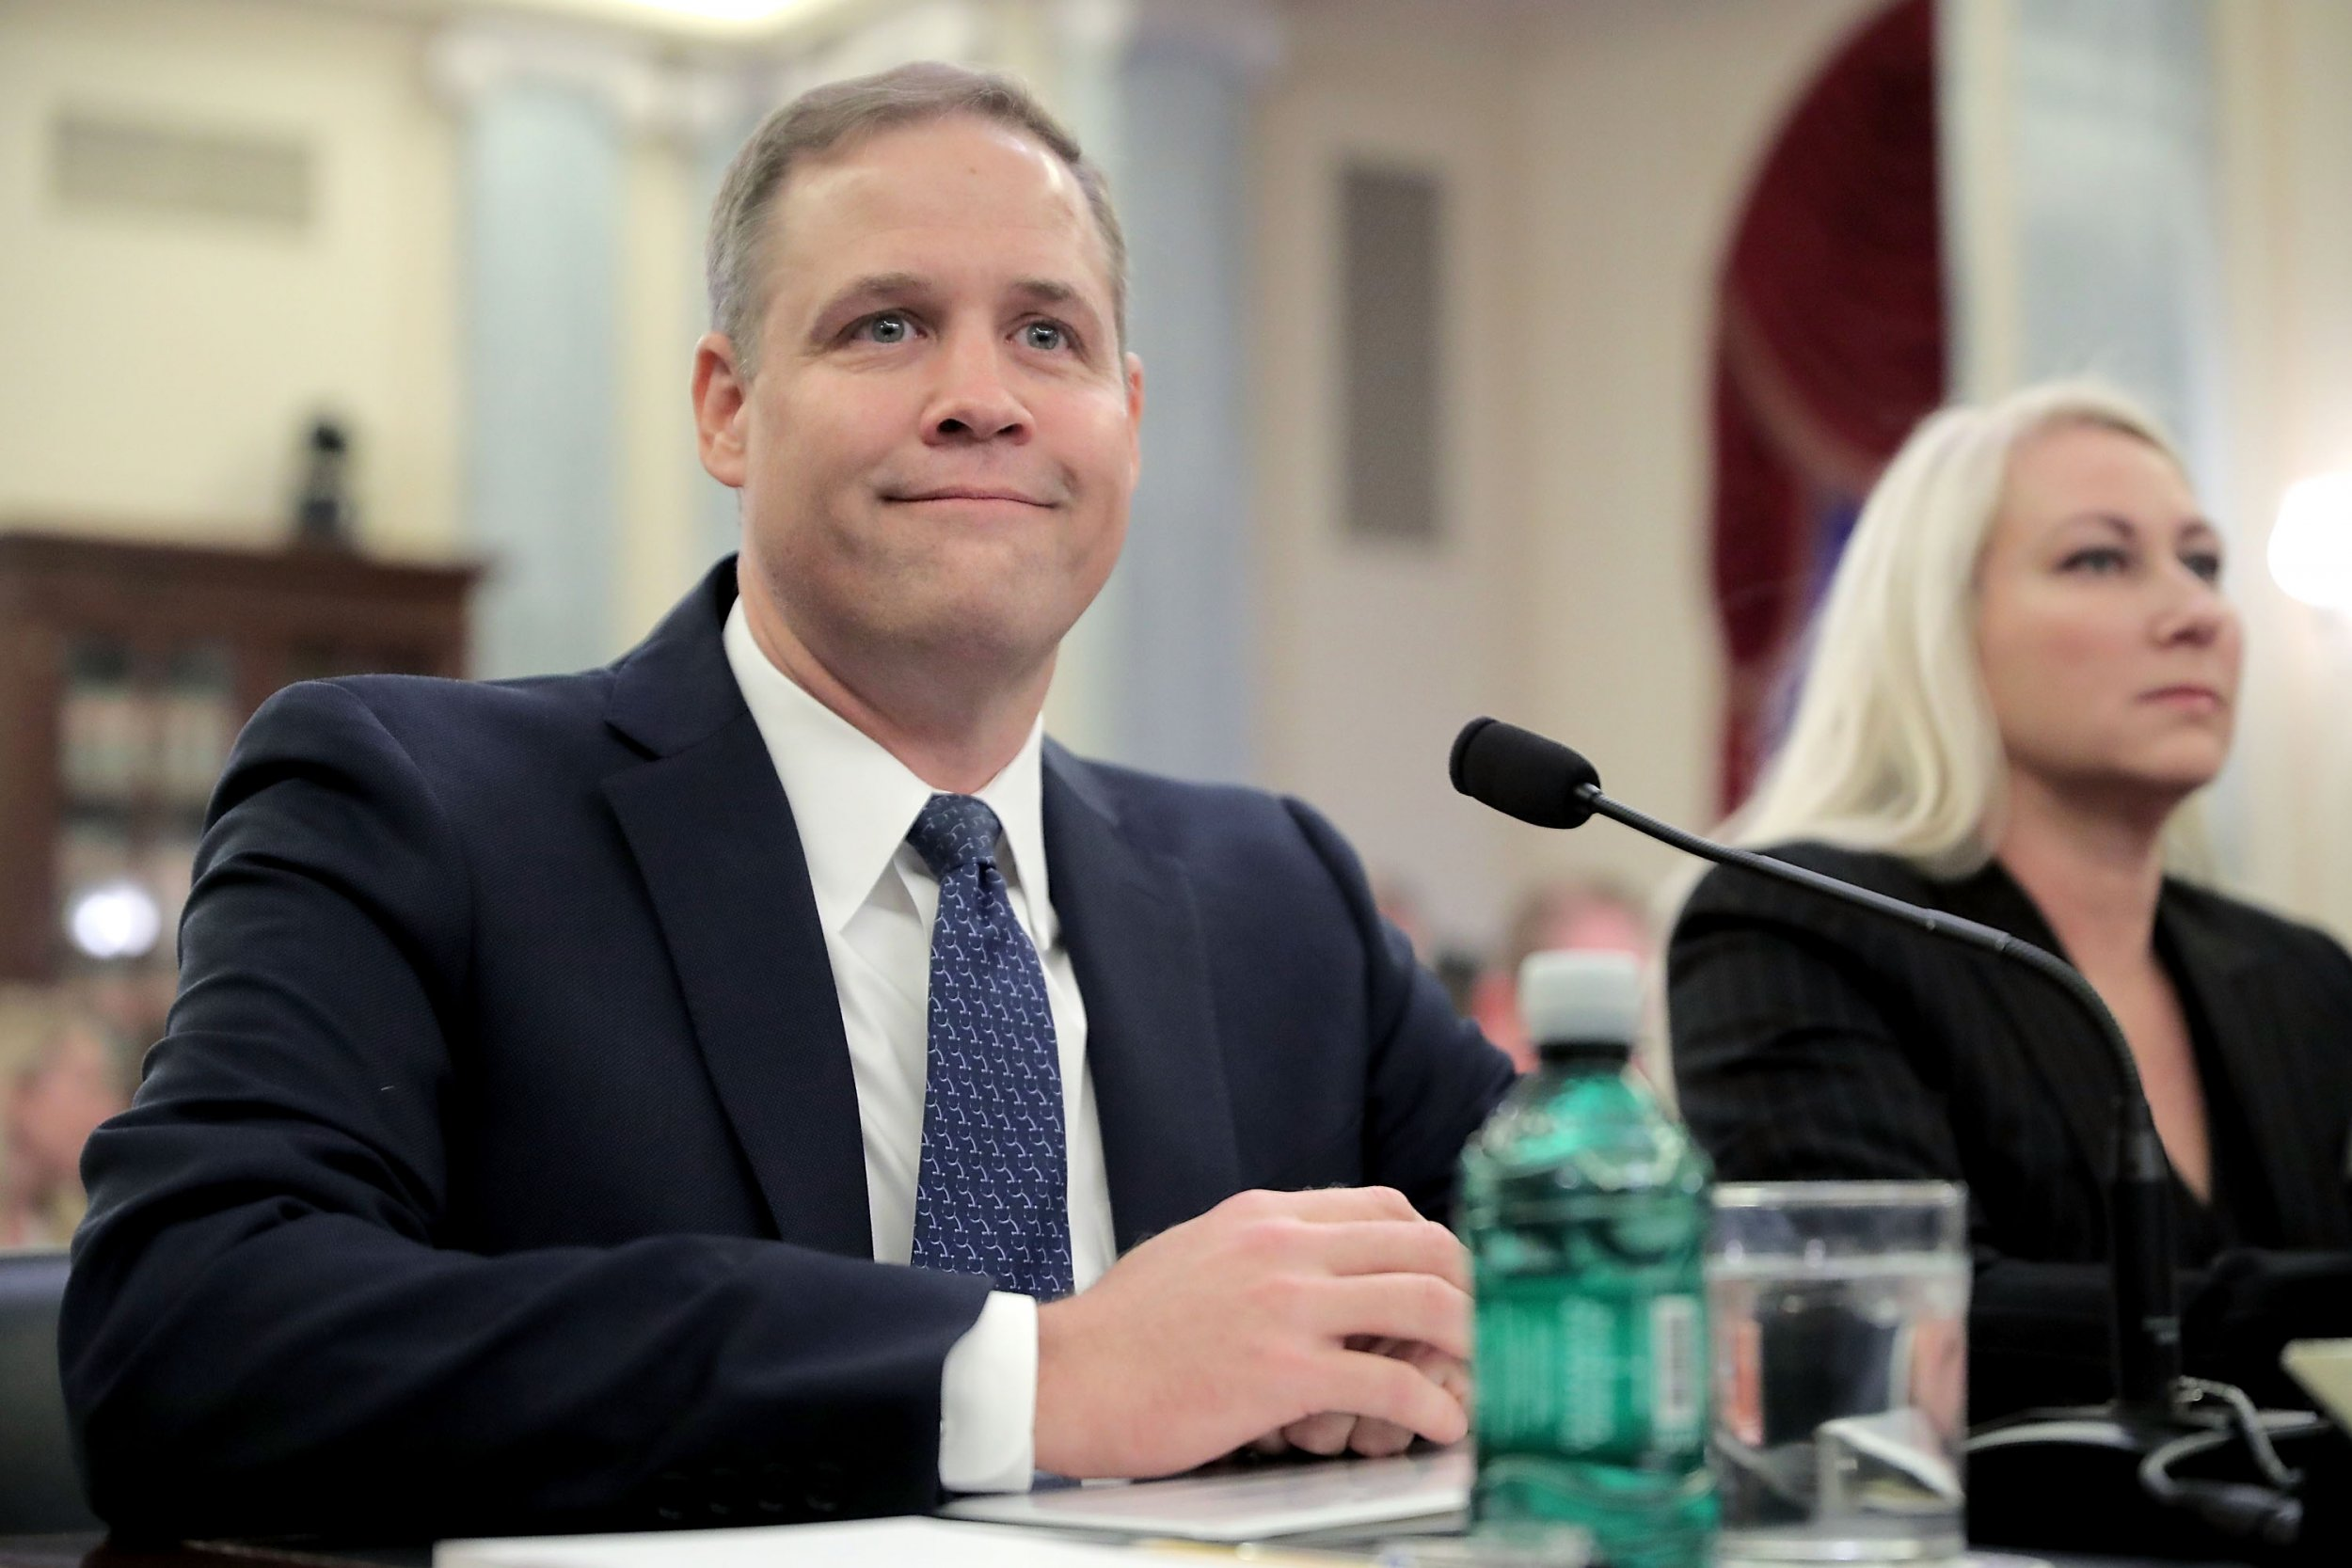 Everything you need to know about NASA's new leader, a controversial climate change skeptic